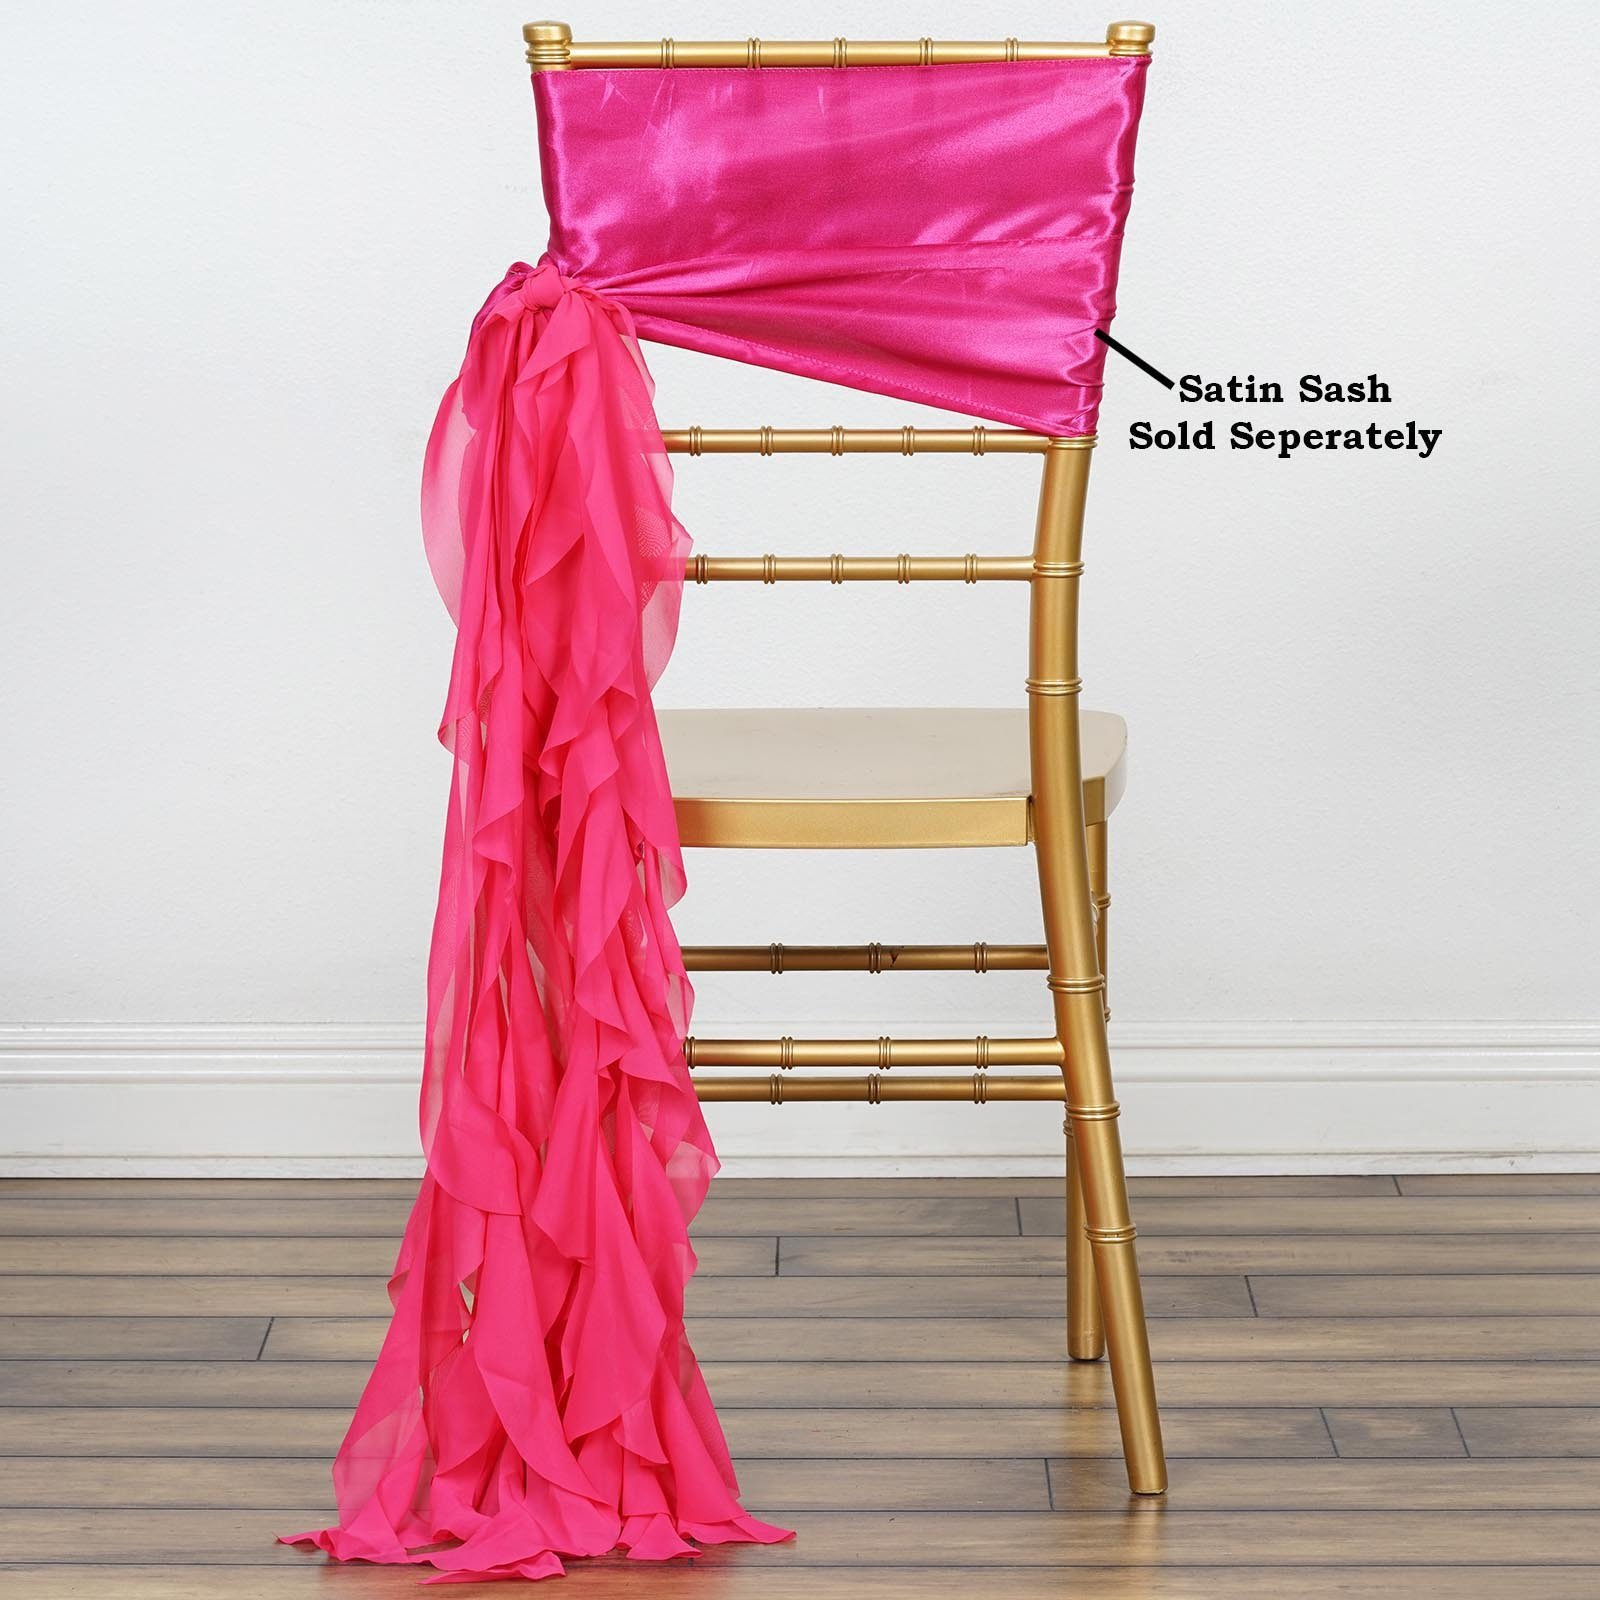 Efavormart Tableclothsfactory 5pcs Chiffon Fushia Curly Chair Sashes For Home Wedding Birthday Party Dance Banquet Event Decoration